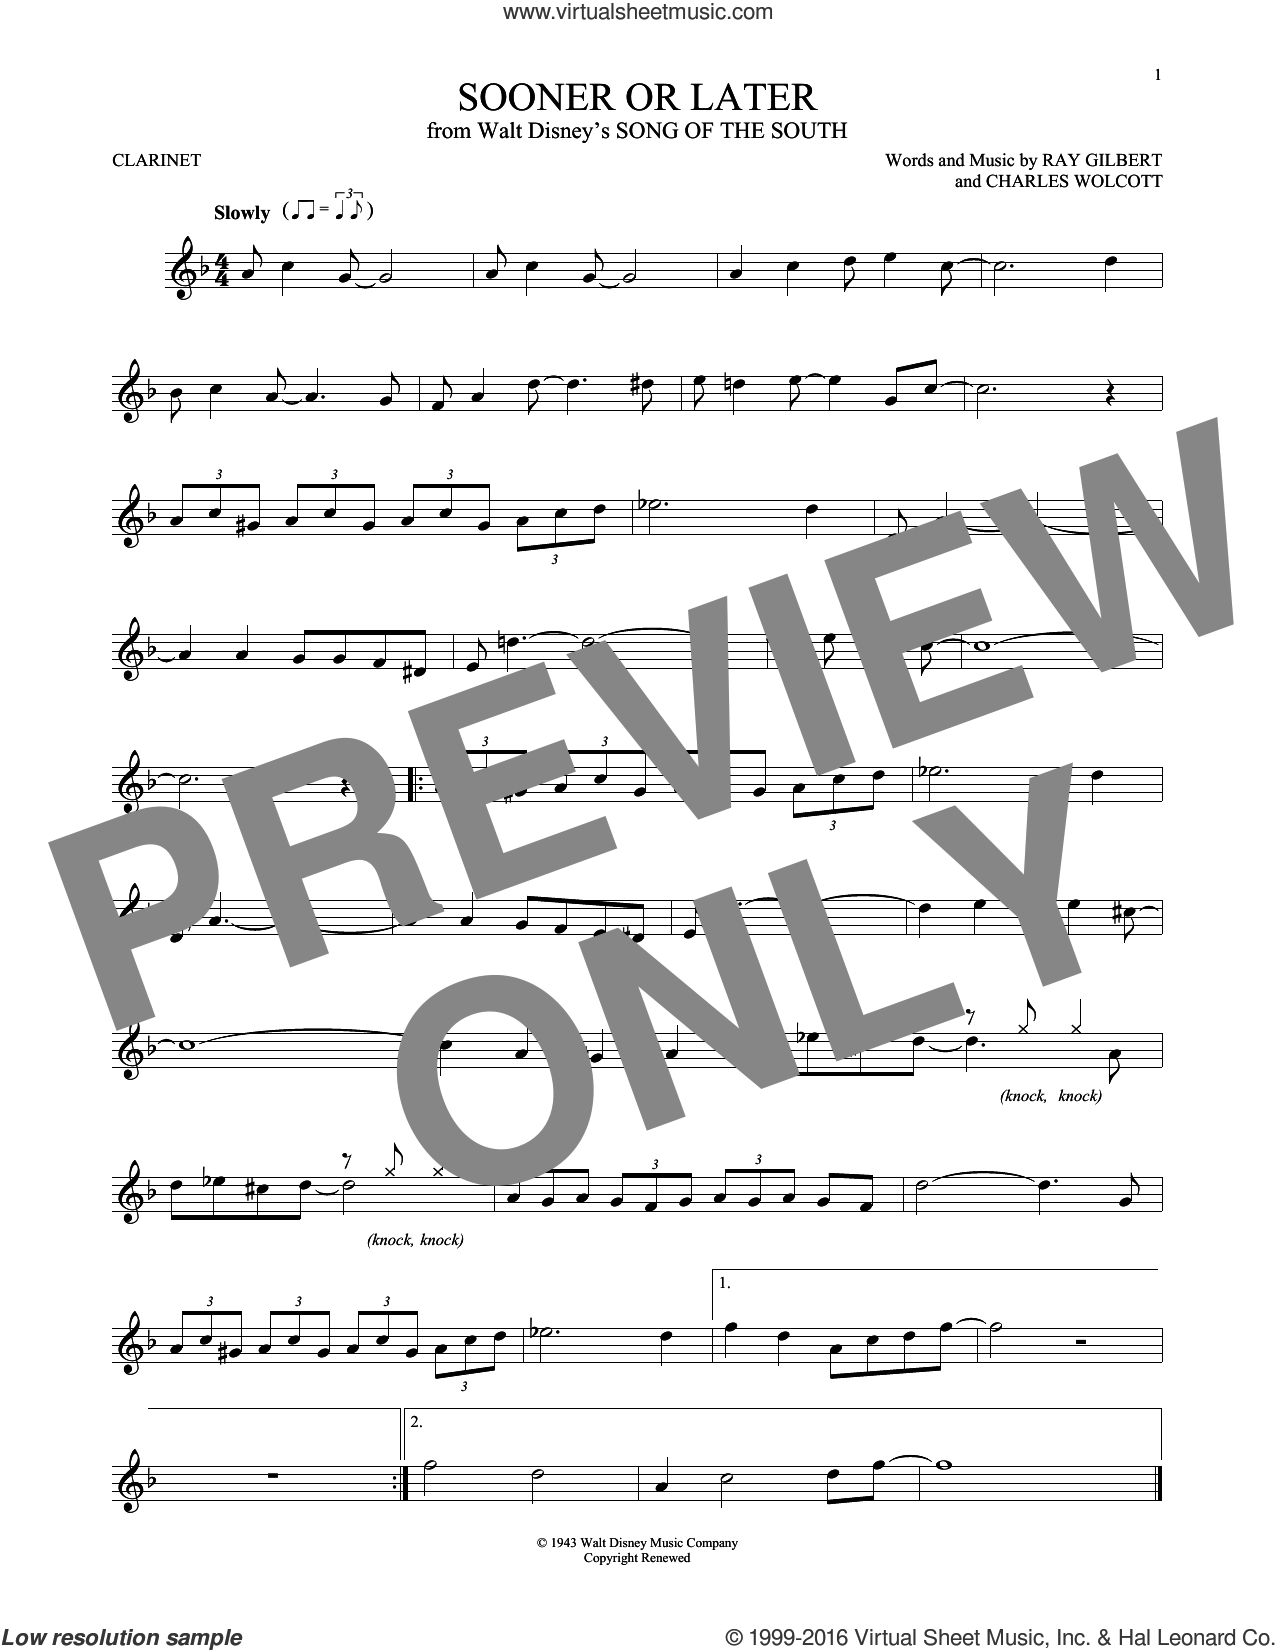 Sooner Or Later sheet music for clarinet solo by Ray Gilbert, Charles Wolcott and Ray Gilbert & Charles Wolcott, intermediate skill level